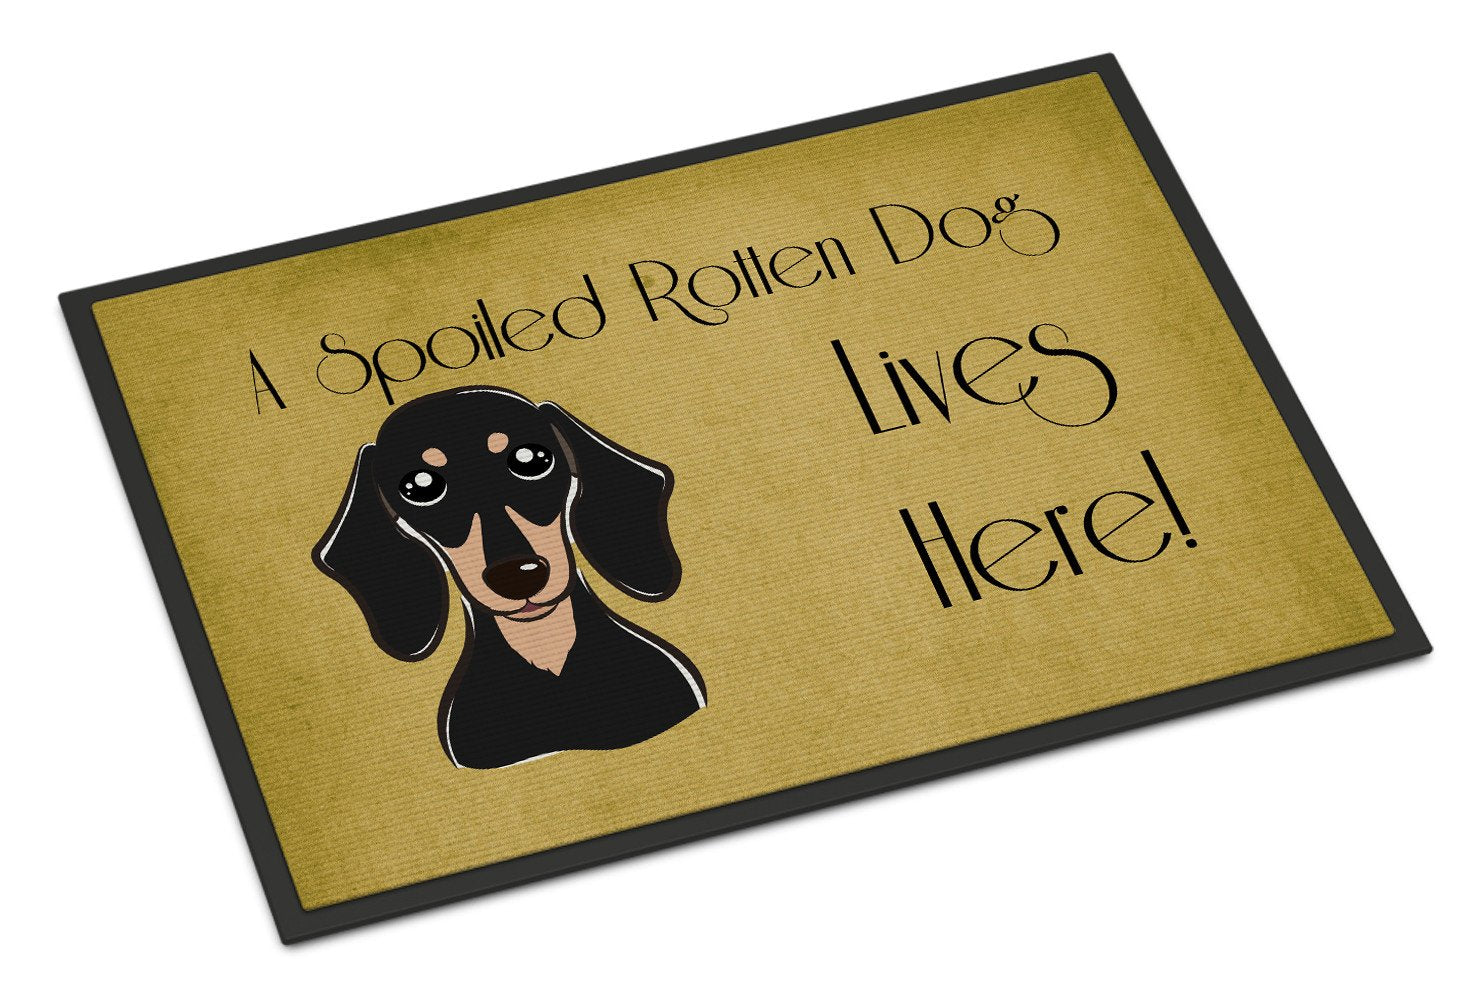 Smooth Black and Tan Dachshund Spoiled Dog Lives Here Indoor or Outdoor Mat 18x27 BB1463MAT - the-store.com